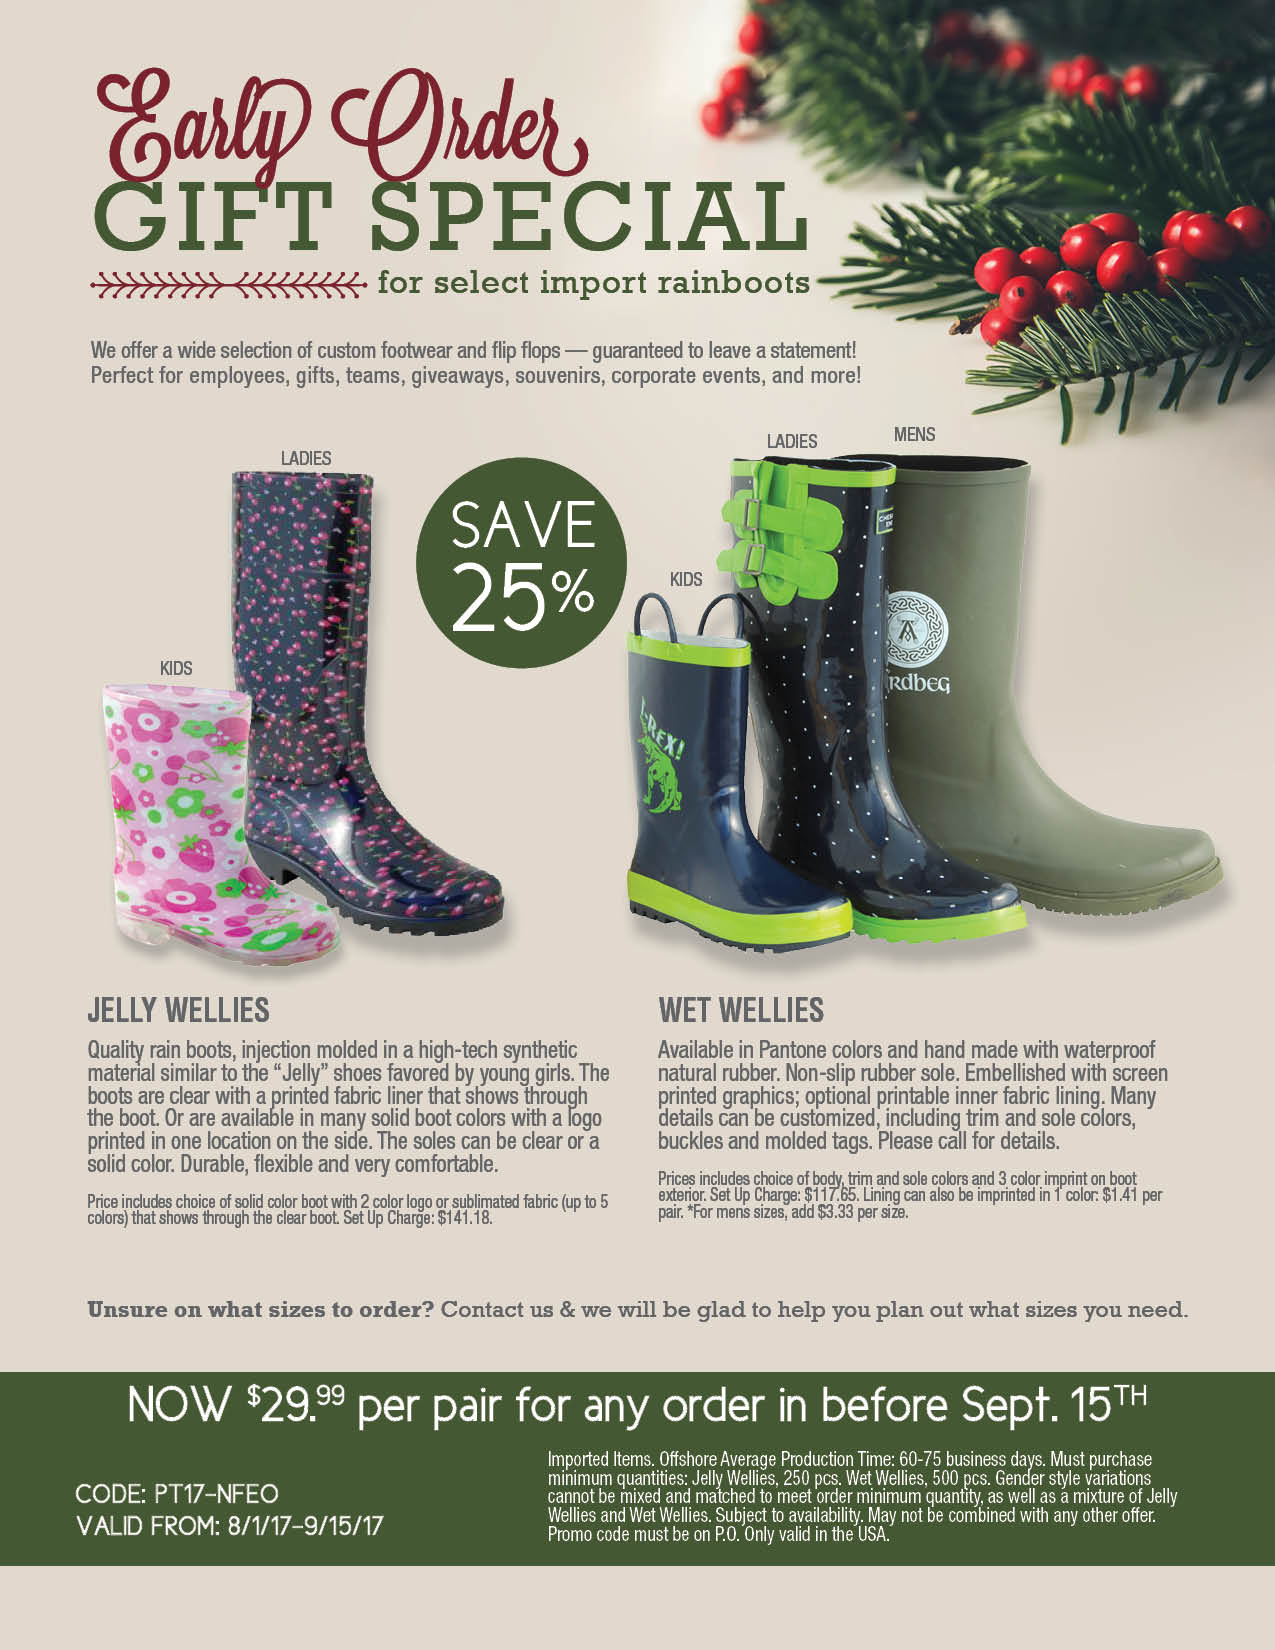 Early Order Rainboots Gift Special